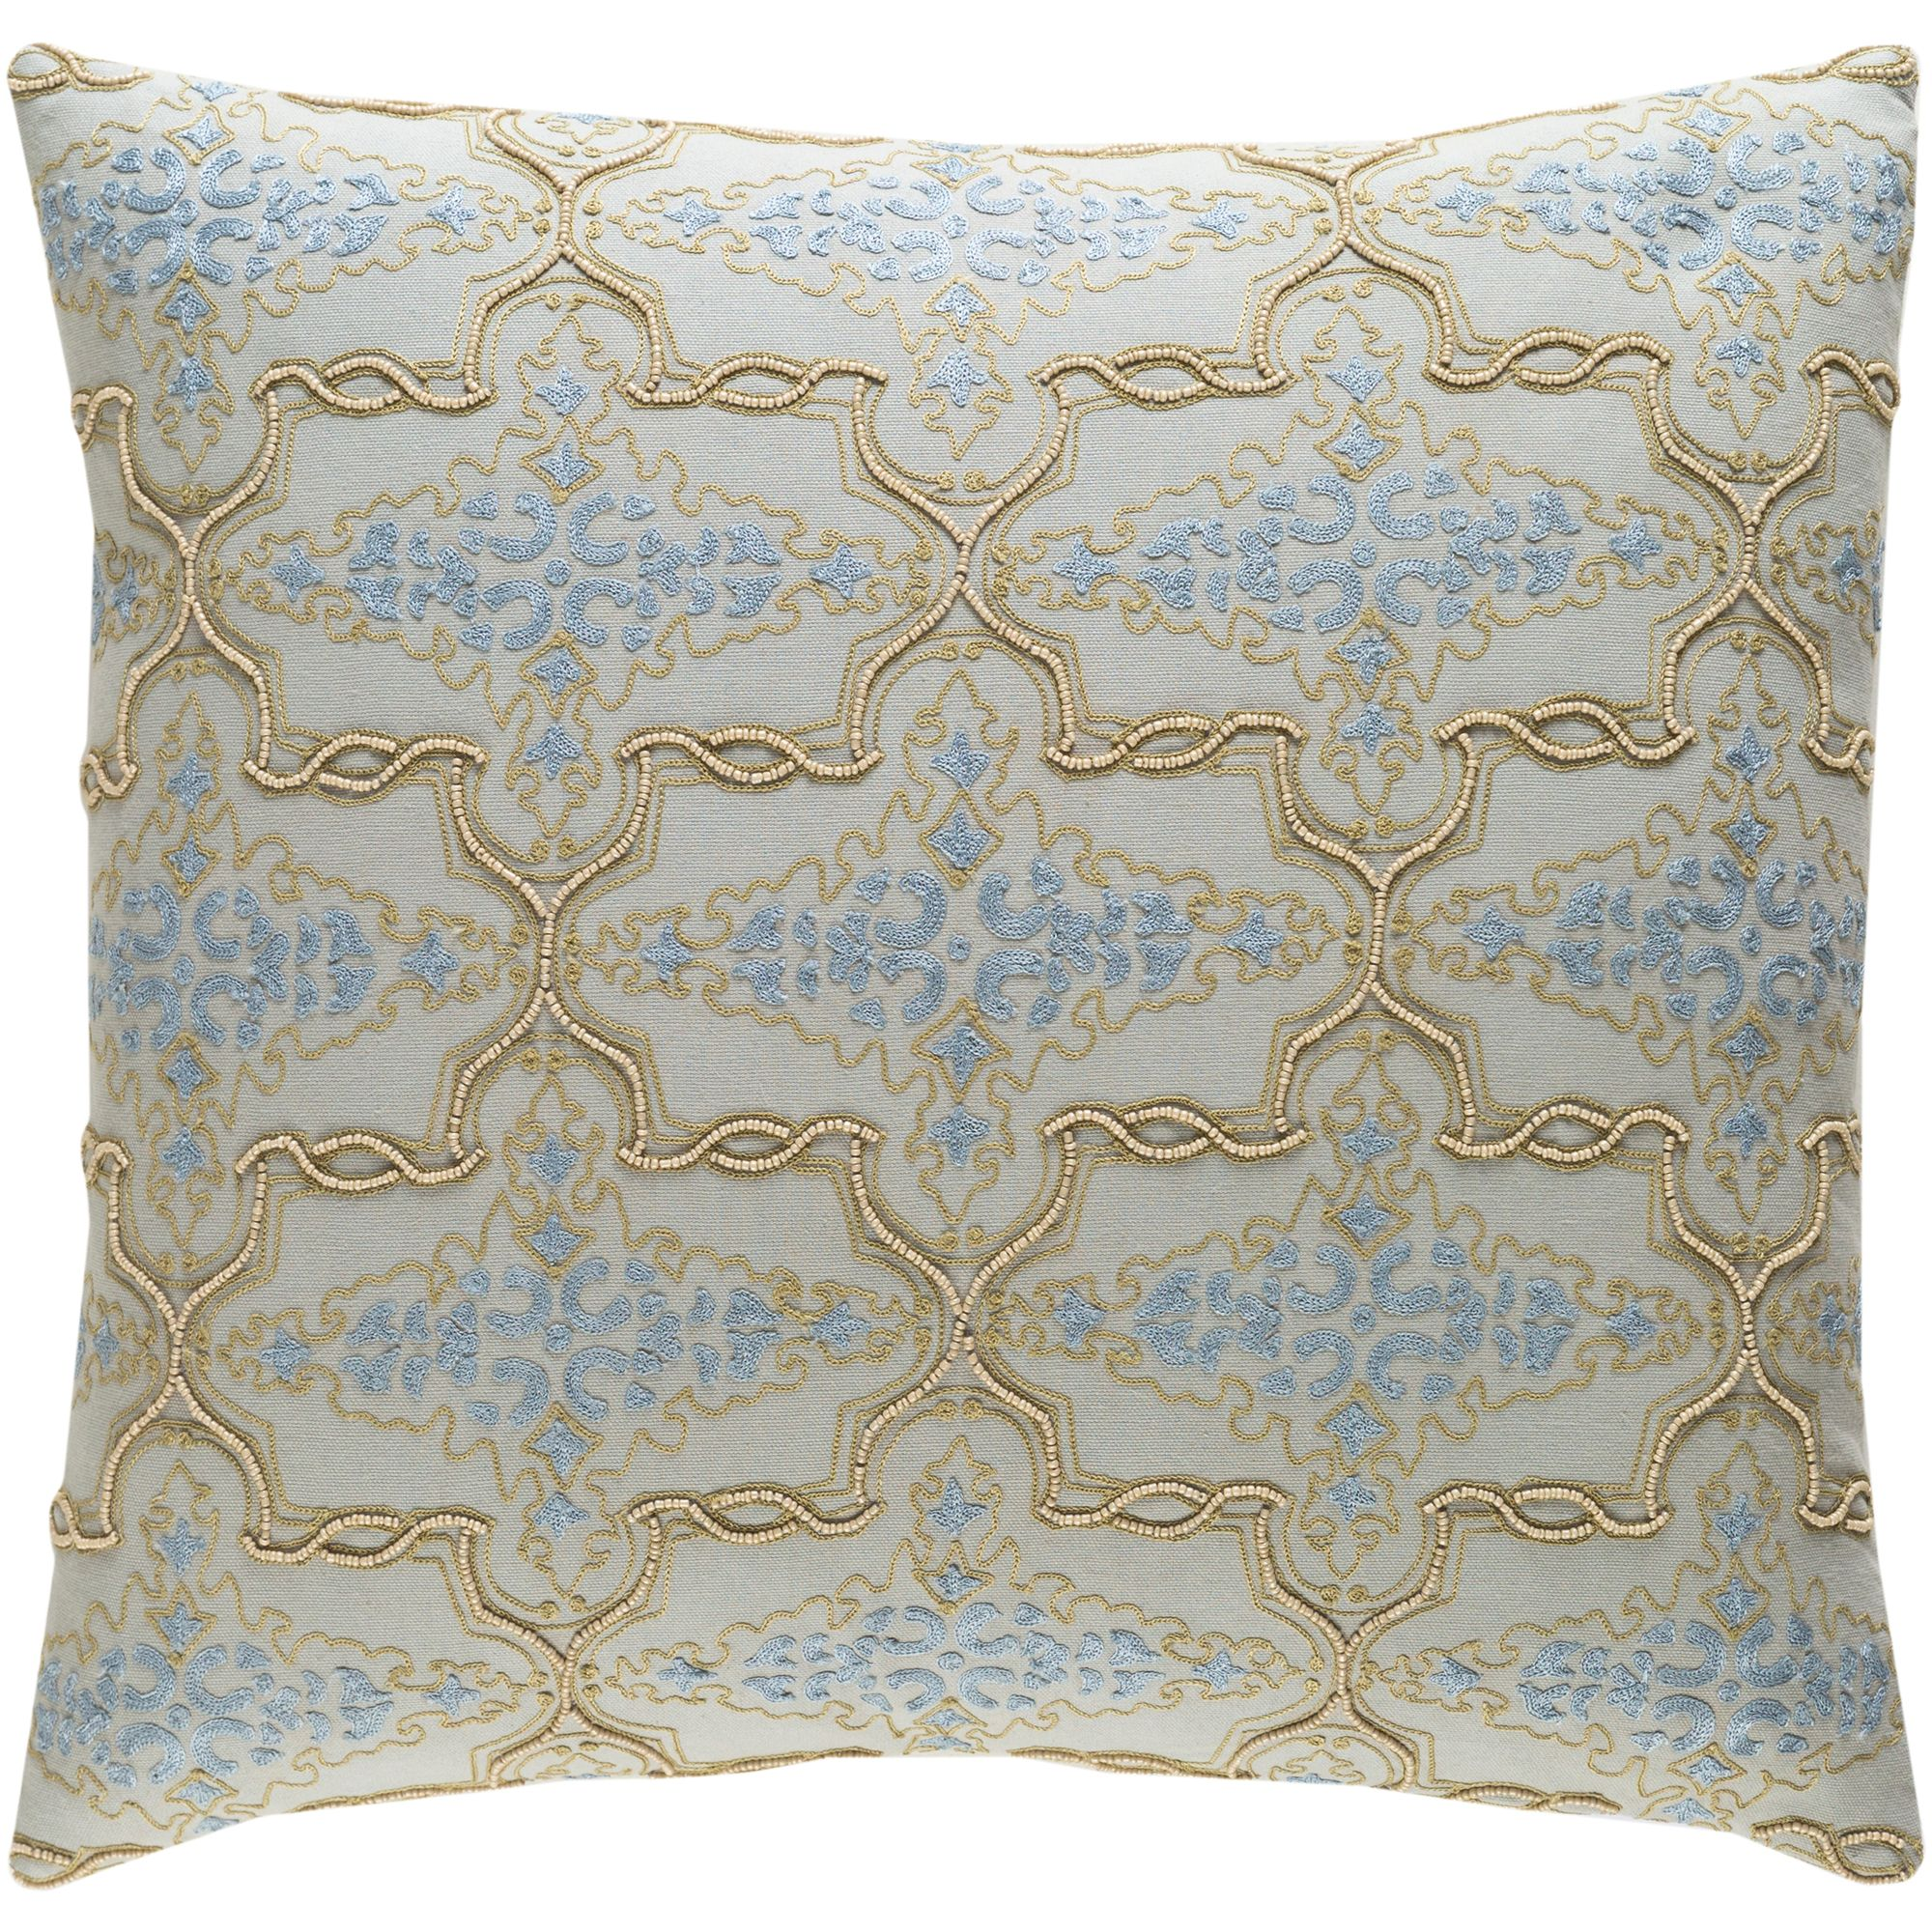 "Art of Knot Goldsboro 20"" x 20"" Pillow Cover"